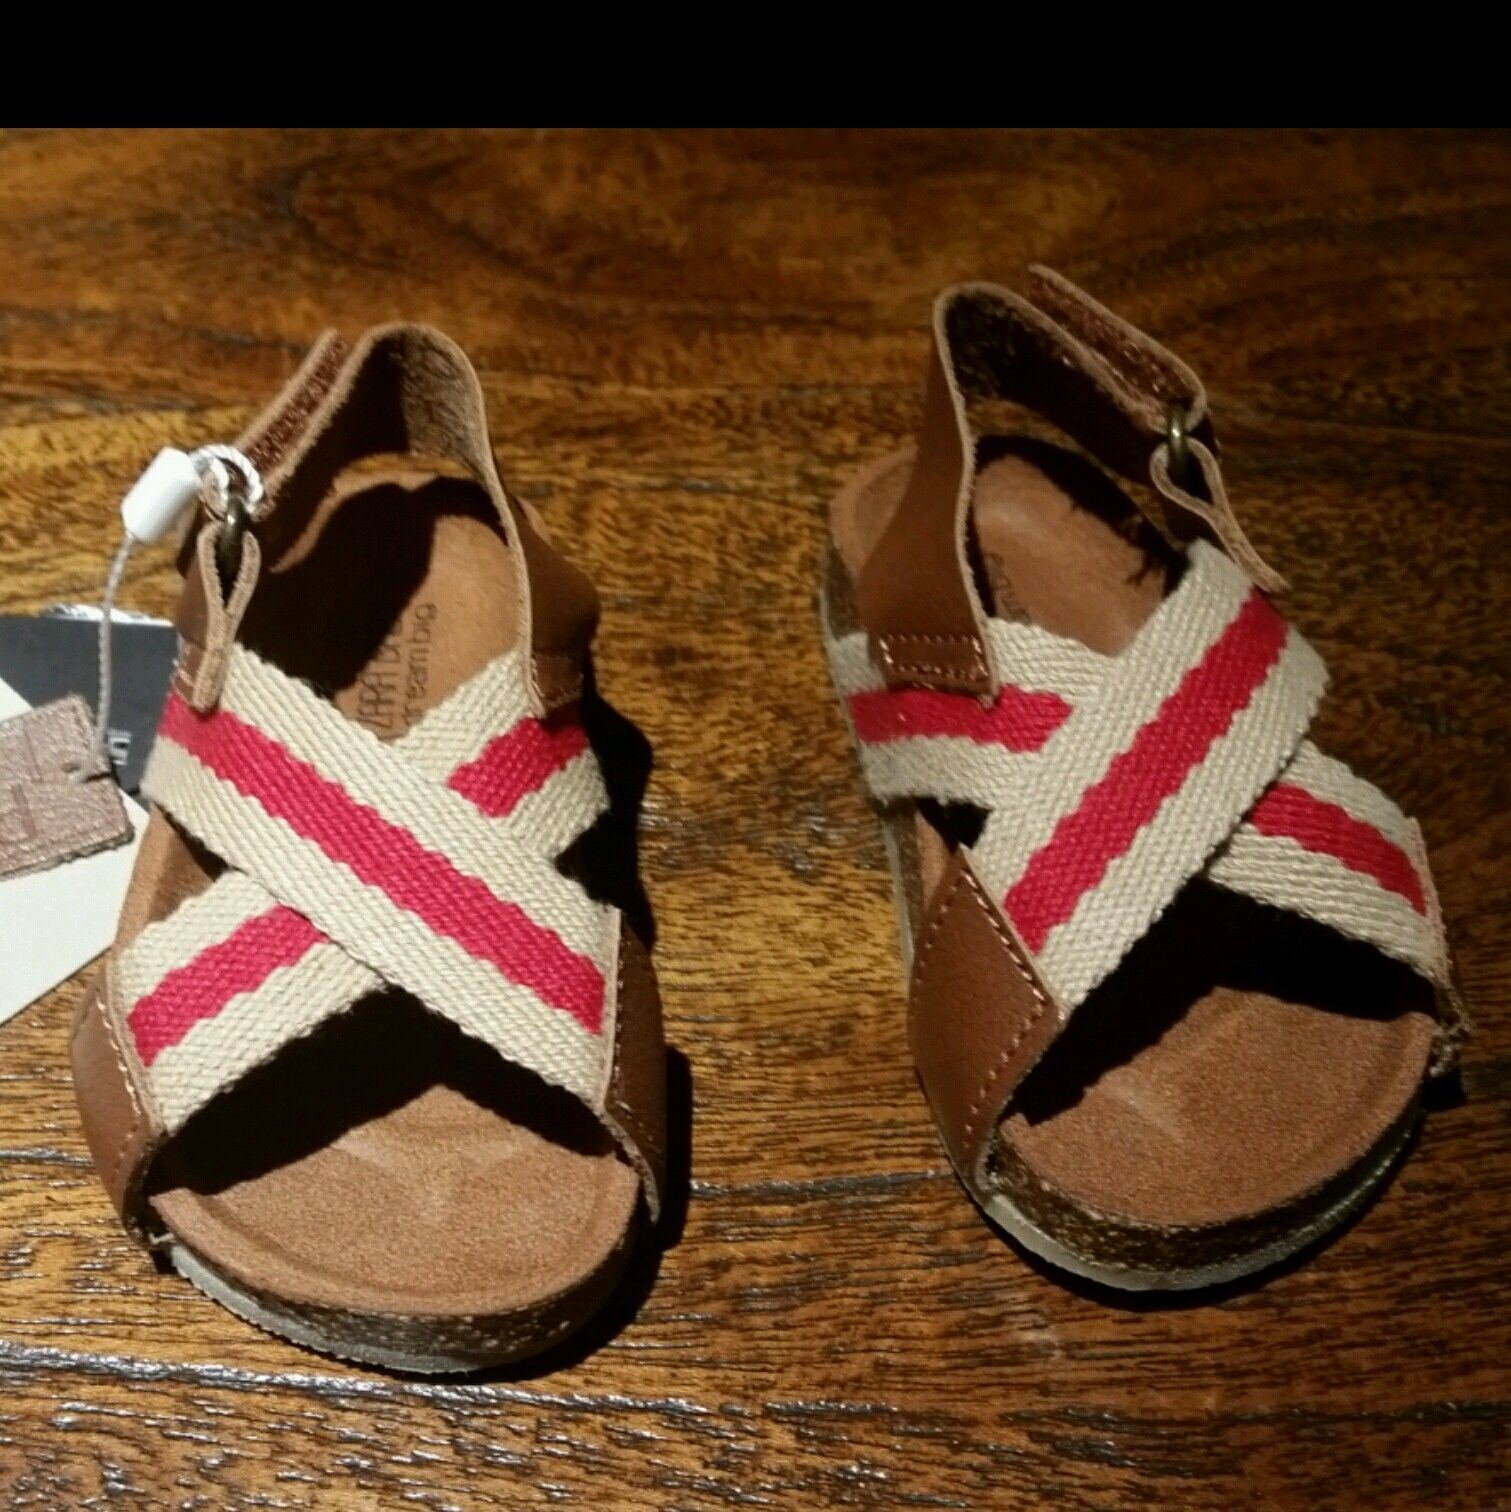 Zara Baby Boy Sandals Shoes Size 2 US 18 EUR | eBay ...